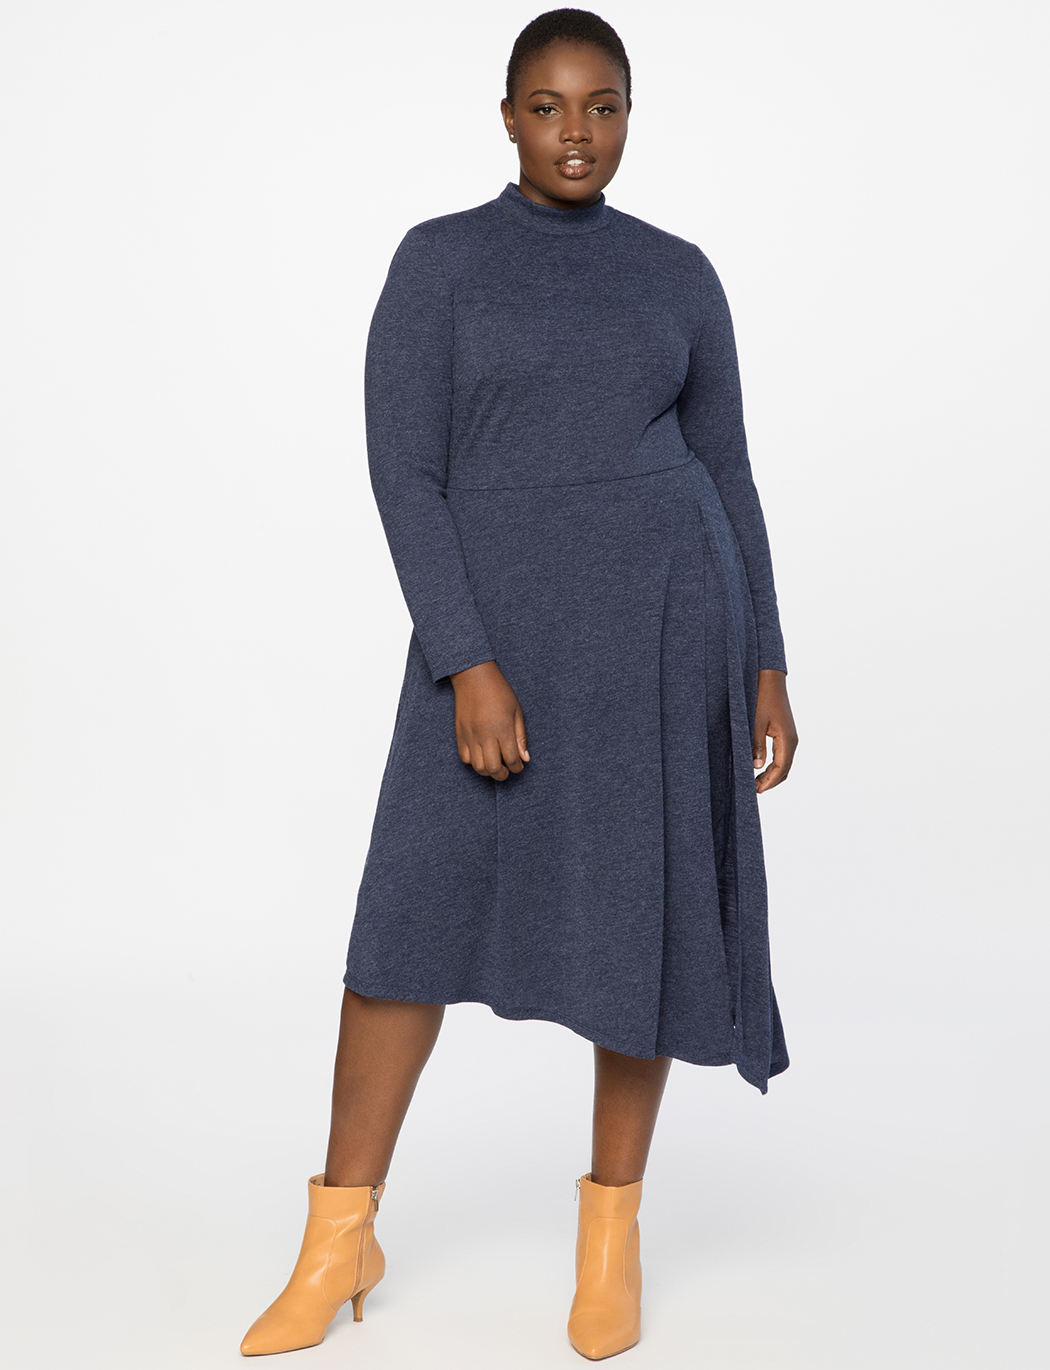 Asymmetrical Turtleneck Dress with Slit 2